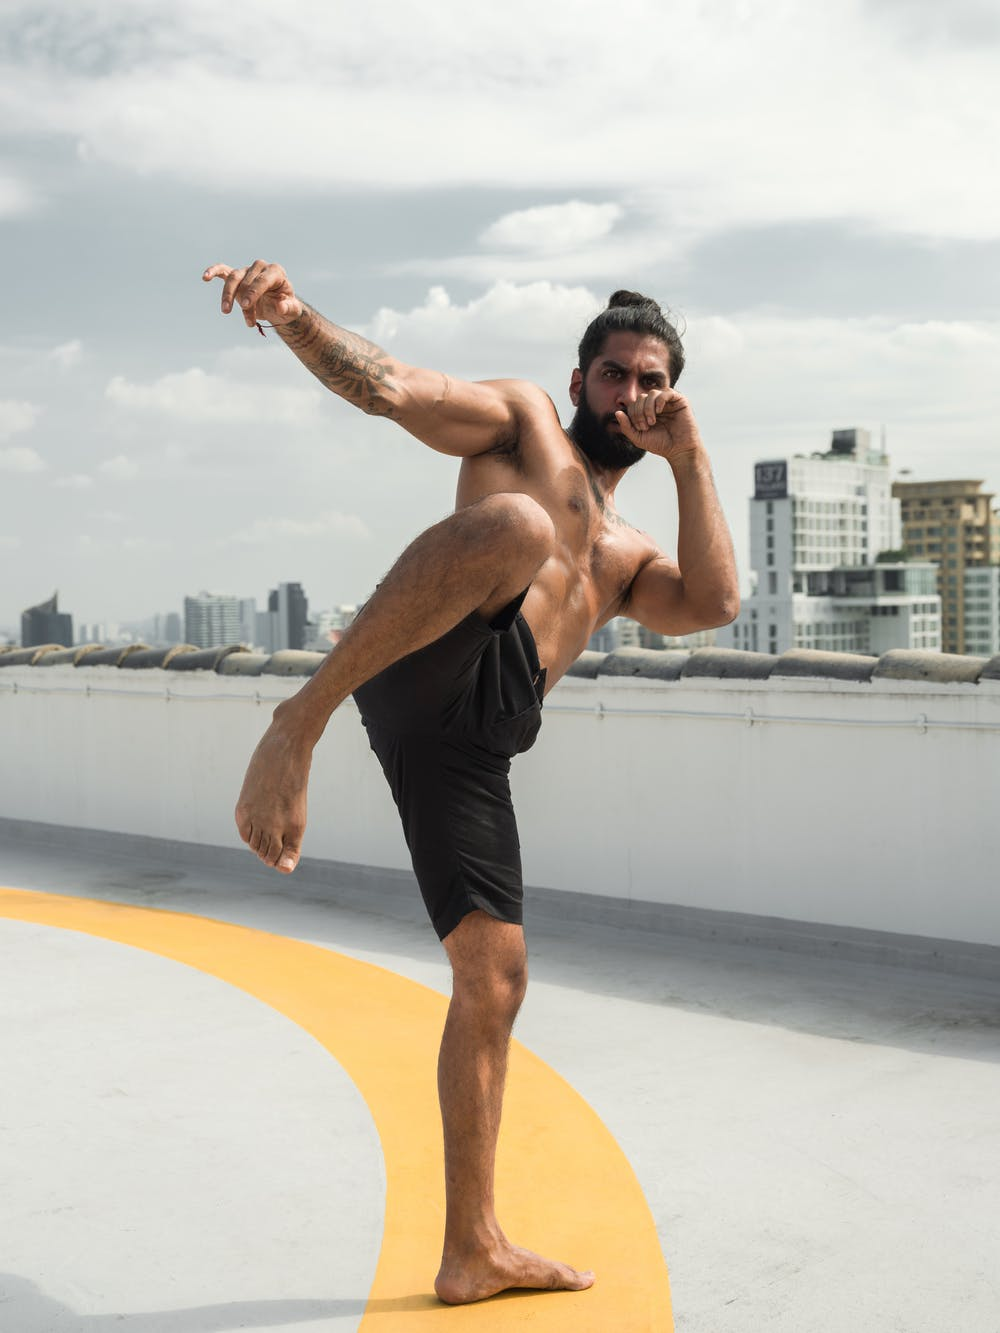 Man in black shorts doing martial art. | Photo: Pexels